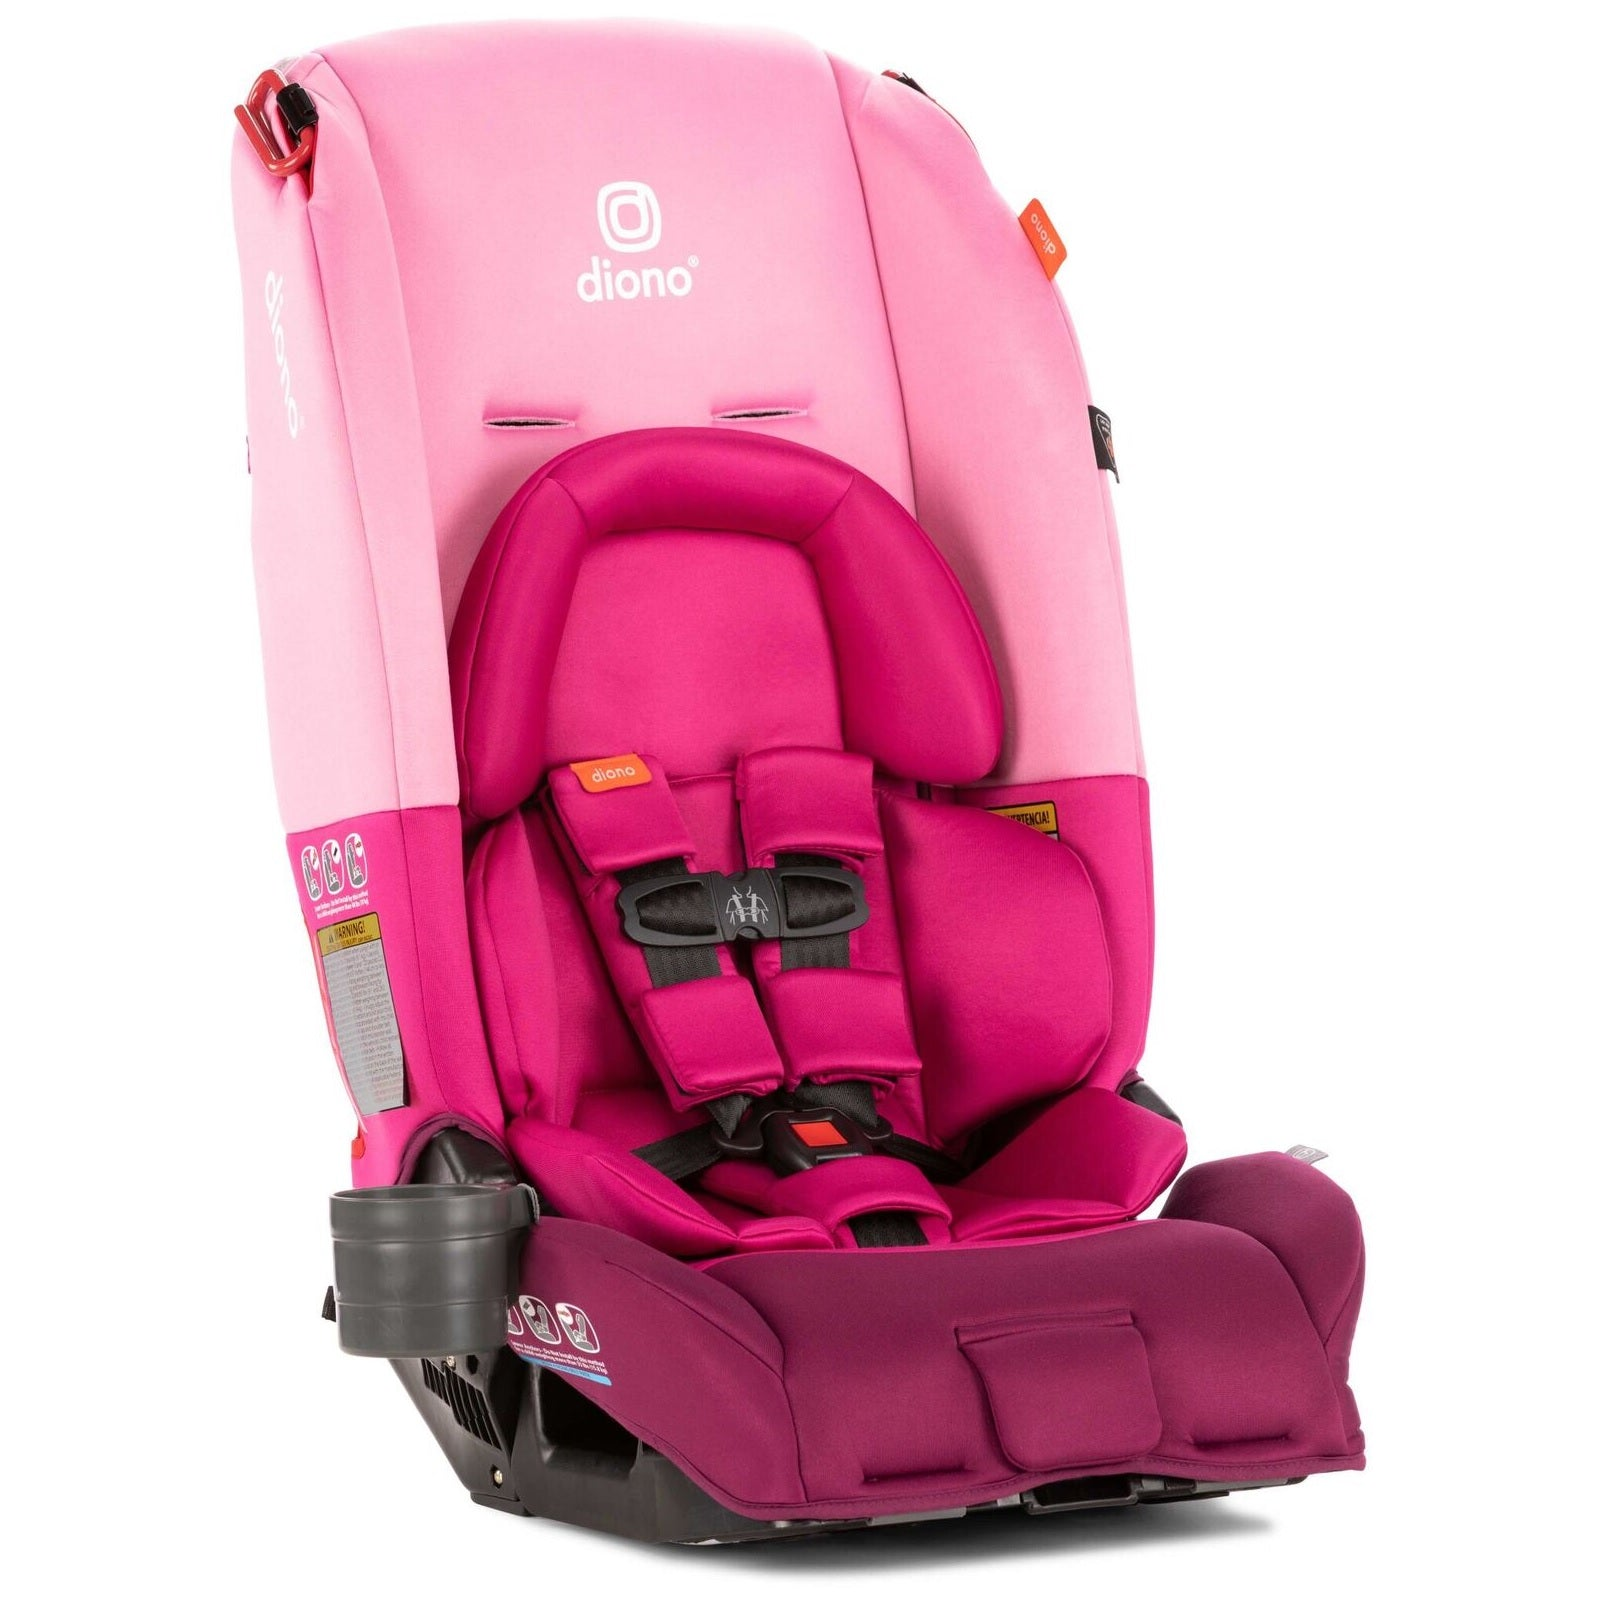 Diono Car Seat >> Diono Radian 3 Rx Convertible Booster Car Seat